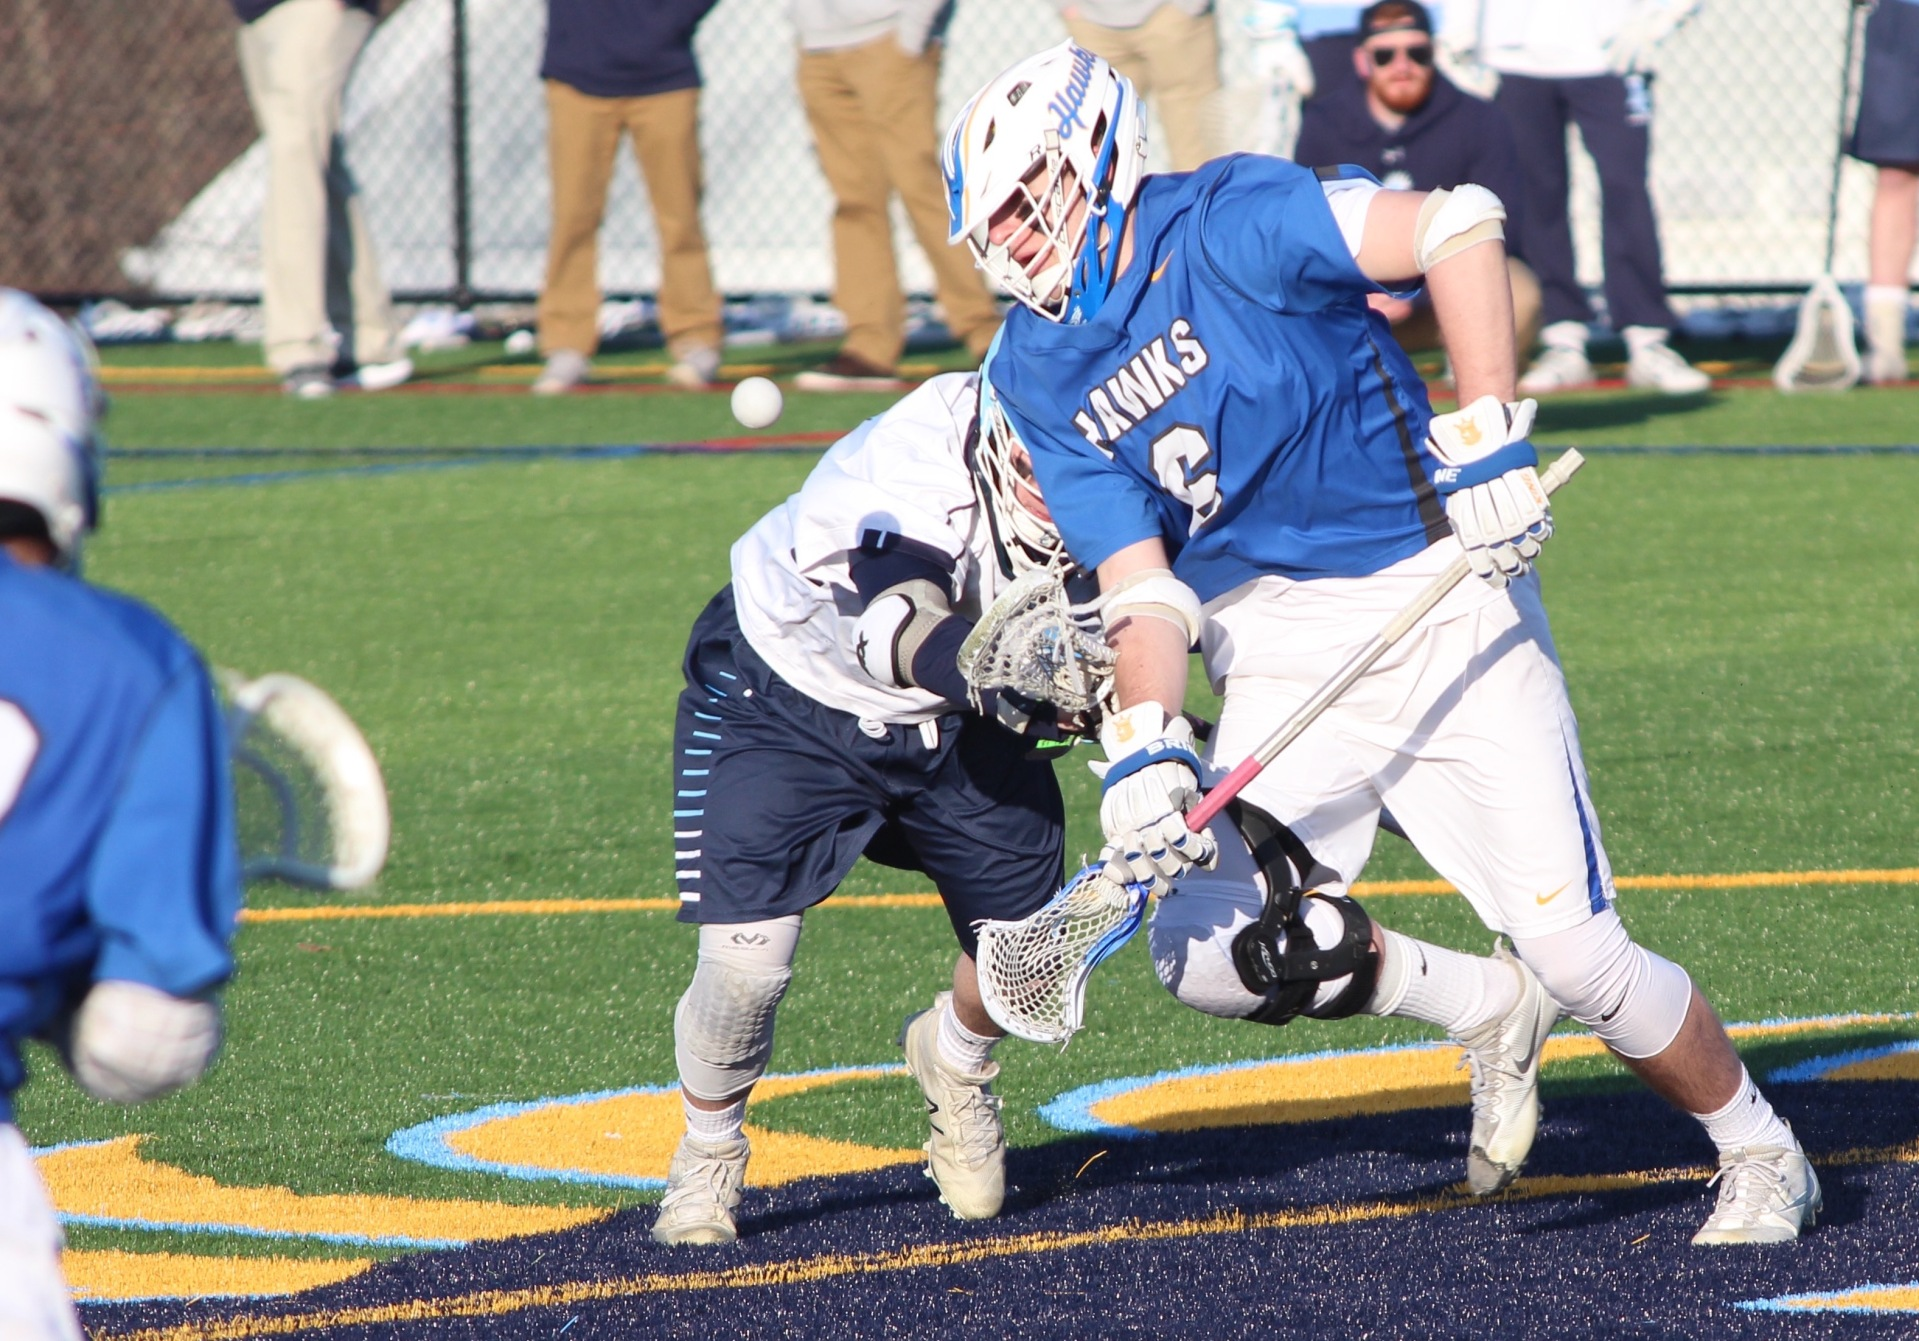 Lasell College vs. Roger Williams University Men's Lacrosse 2018